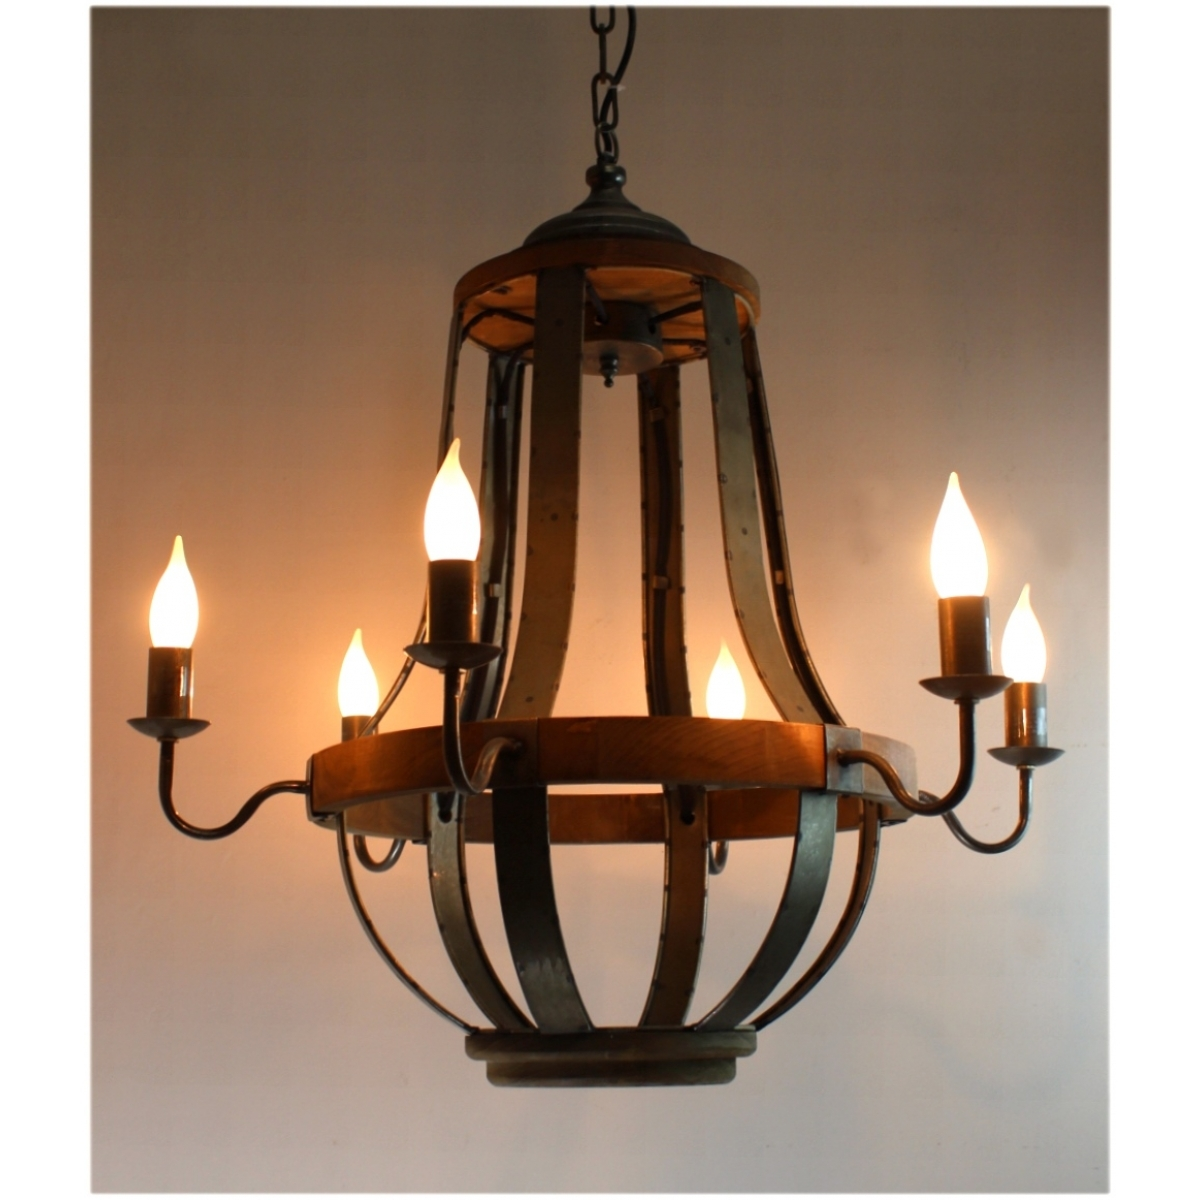 579 Iron Strap And Aged Wood Chandelier French Country Vintage Within Vintage Style Chandeliers (View 6 of 15)